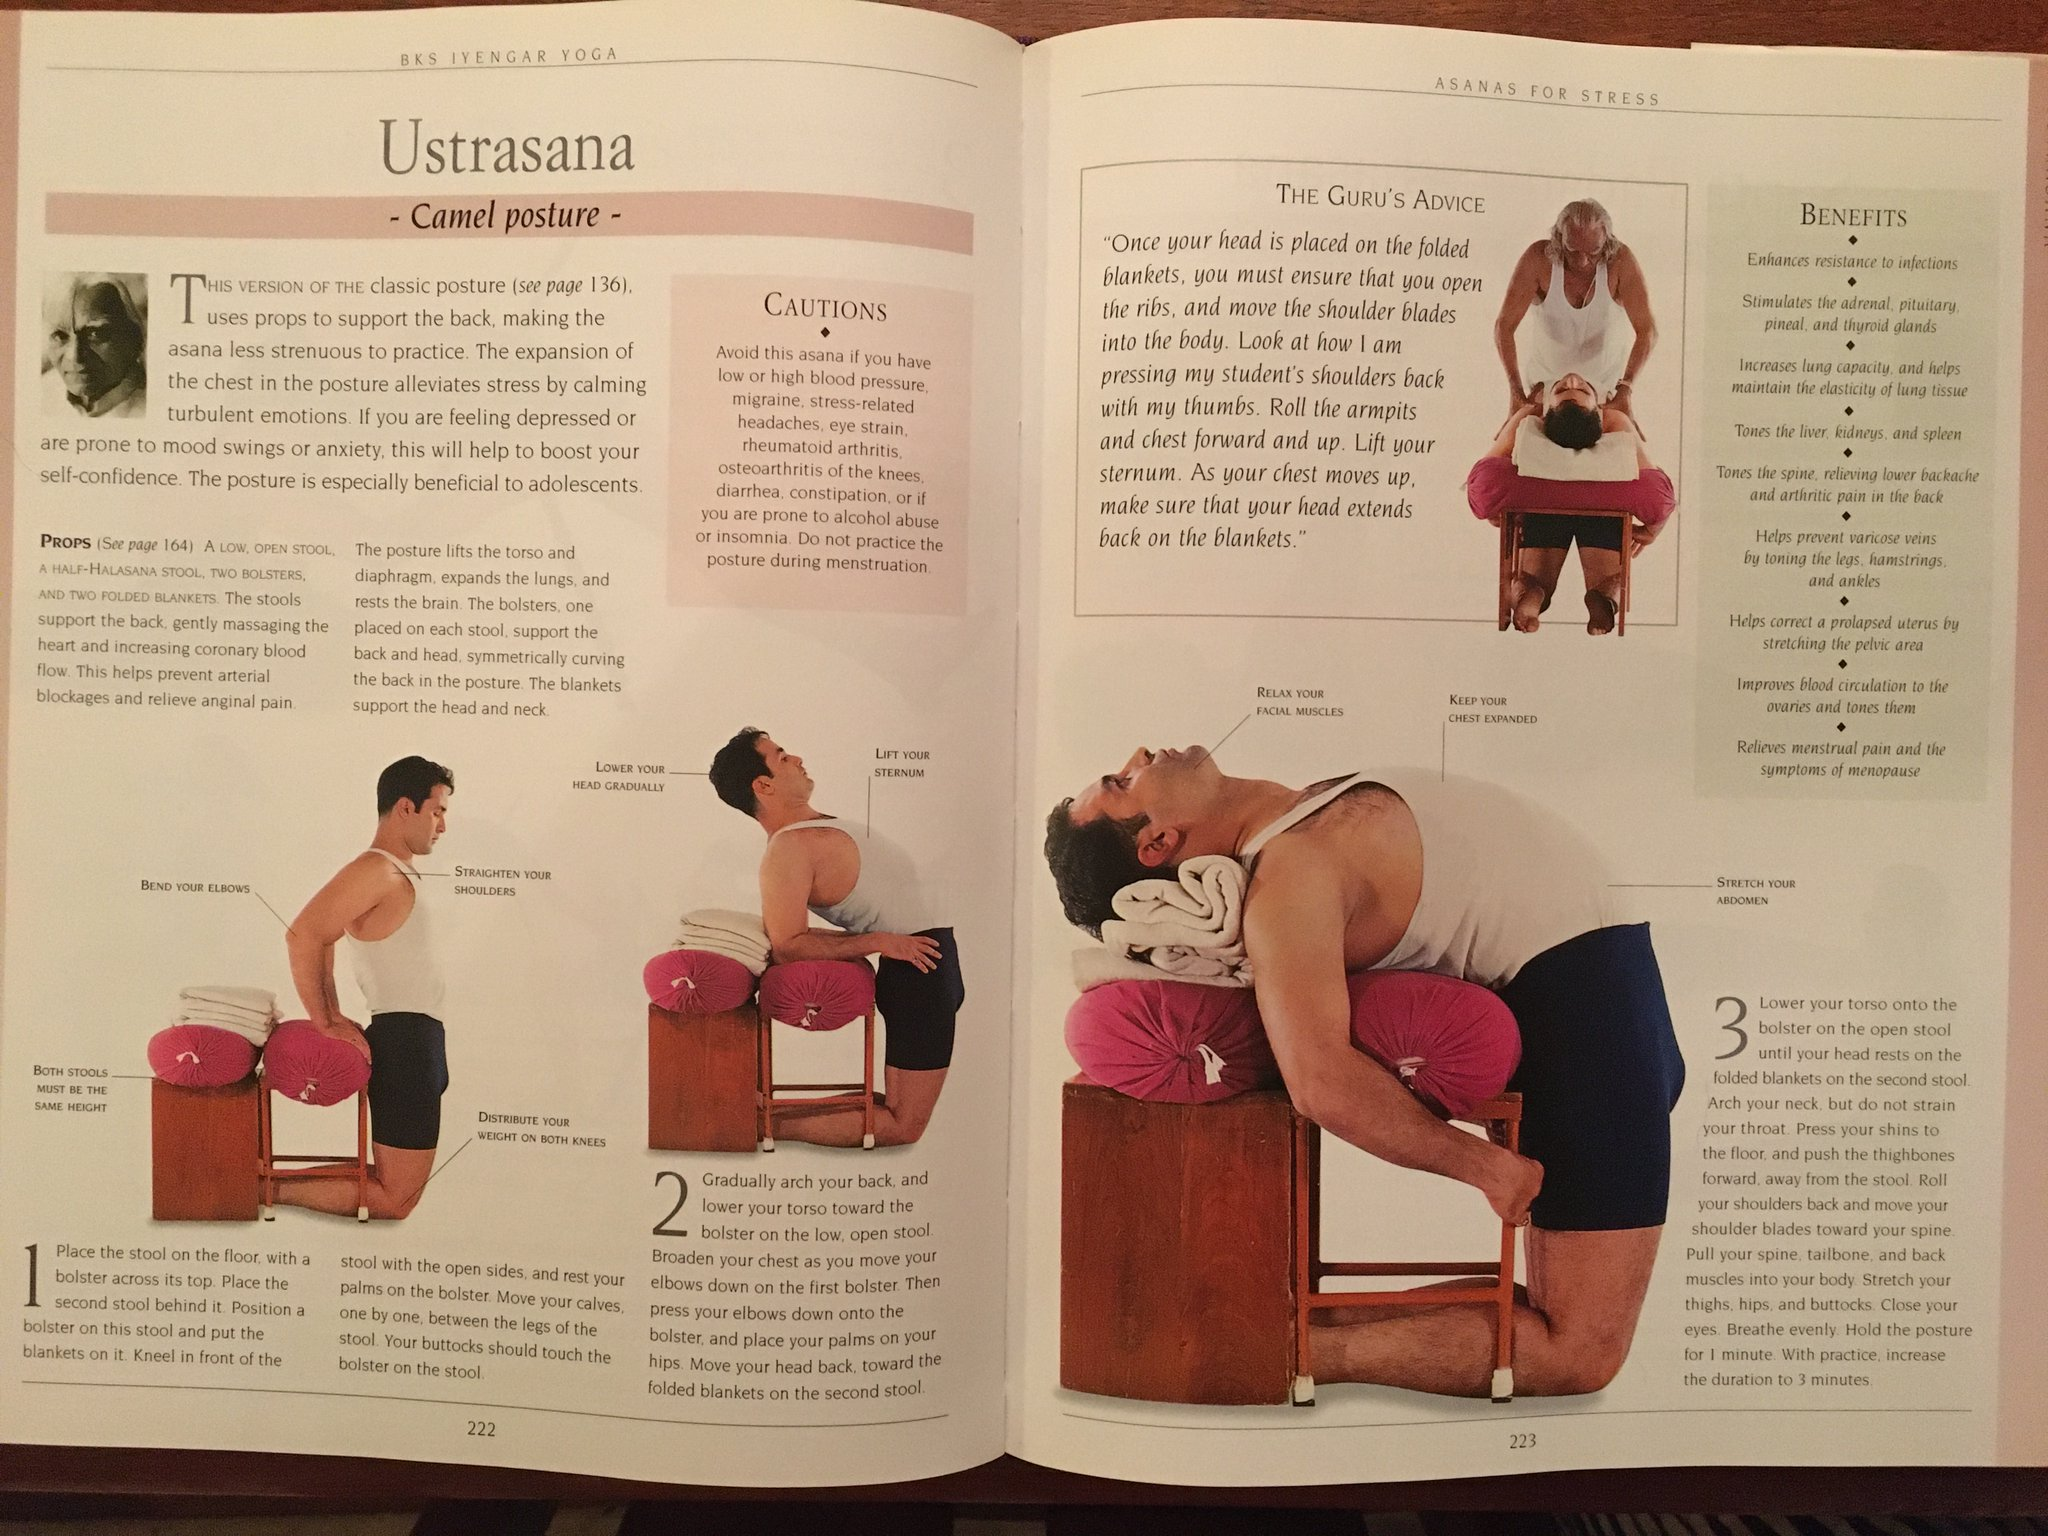 Austin Iyengar Yoga On Twitter Show Your Lungs Some Love With Ustrasana Which Builds Lung Capacity And Elasticity The Second Pic Is From B K S Iyengar S Iyengar Yoga The Path To Holistic Health